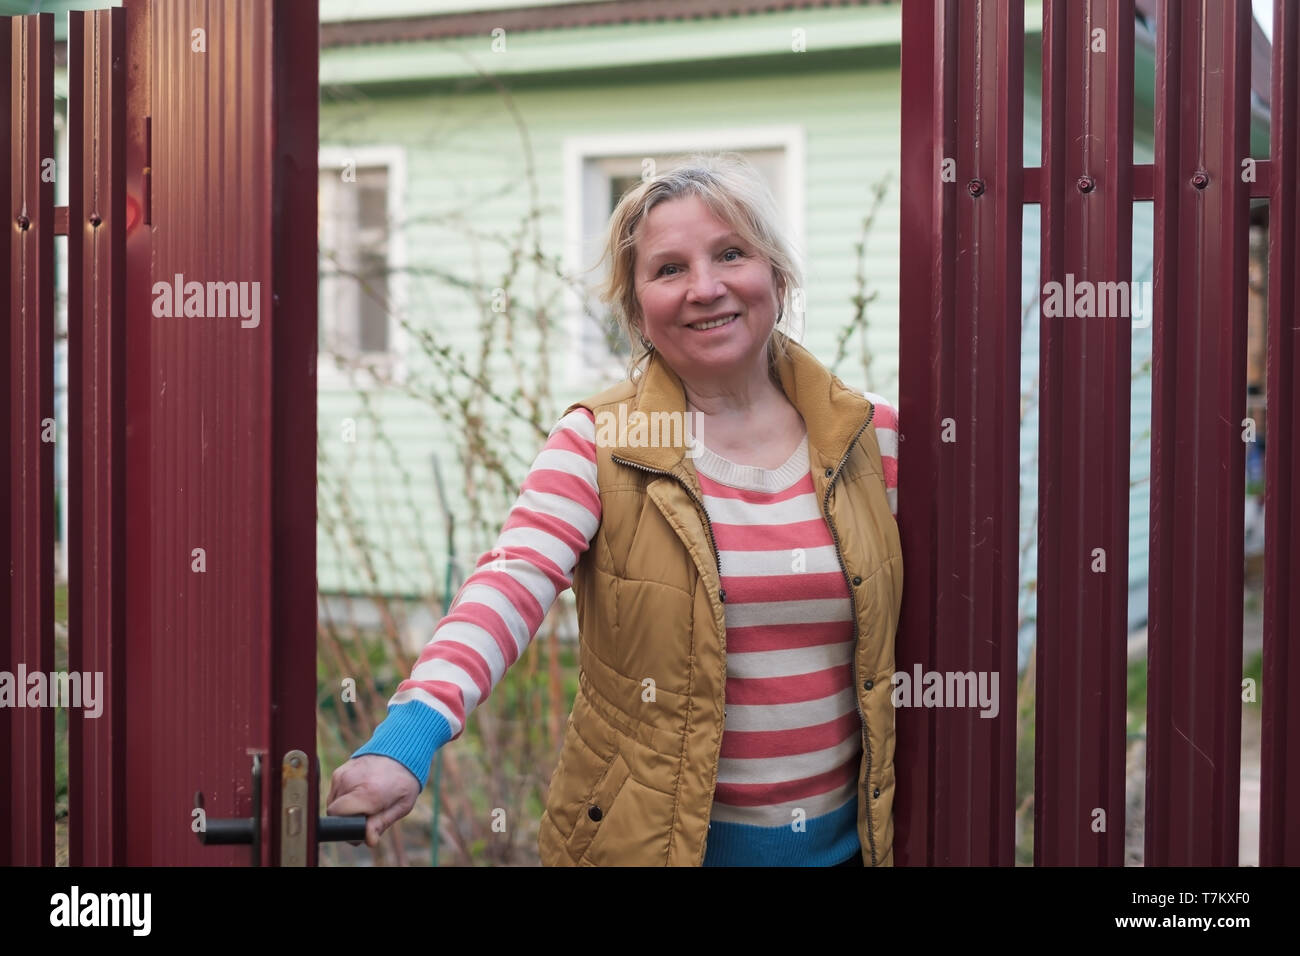 Mature caucasian woman opening the red fence to welcome some guests. - Stock Image